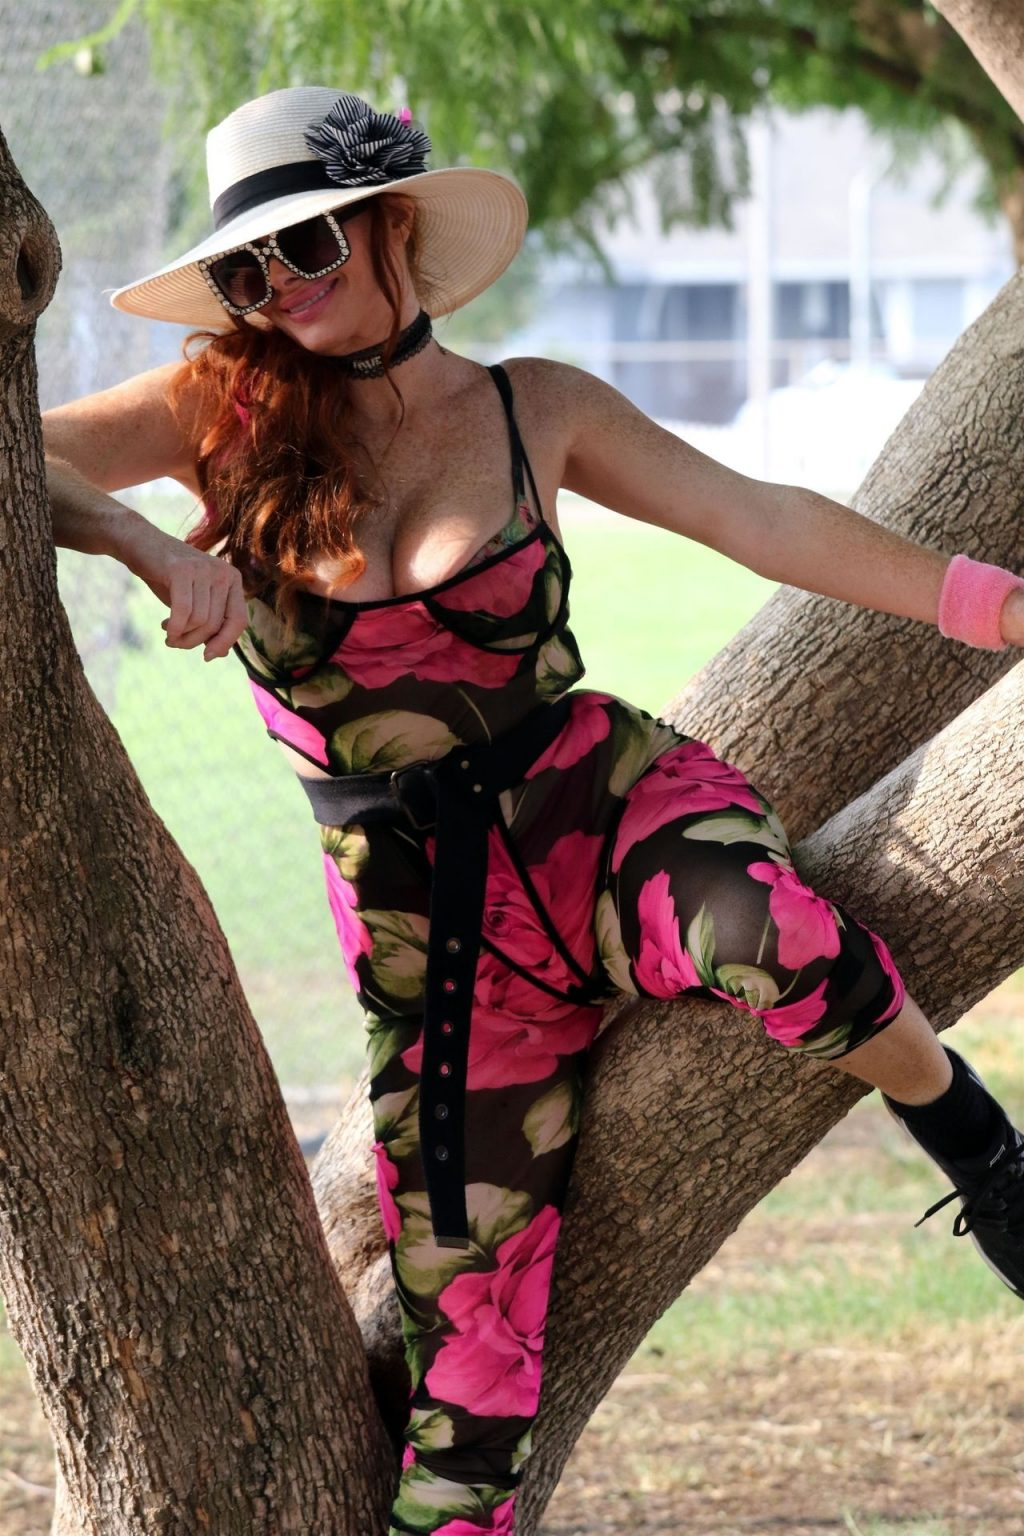 Phoebe Price Gets Her Stretch on in the Park (28 Photos)